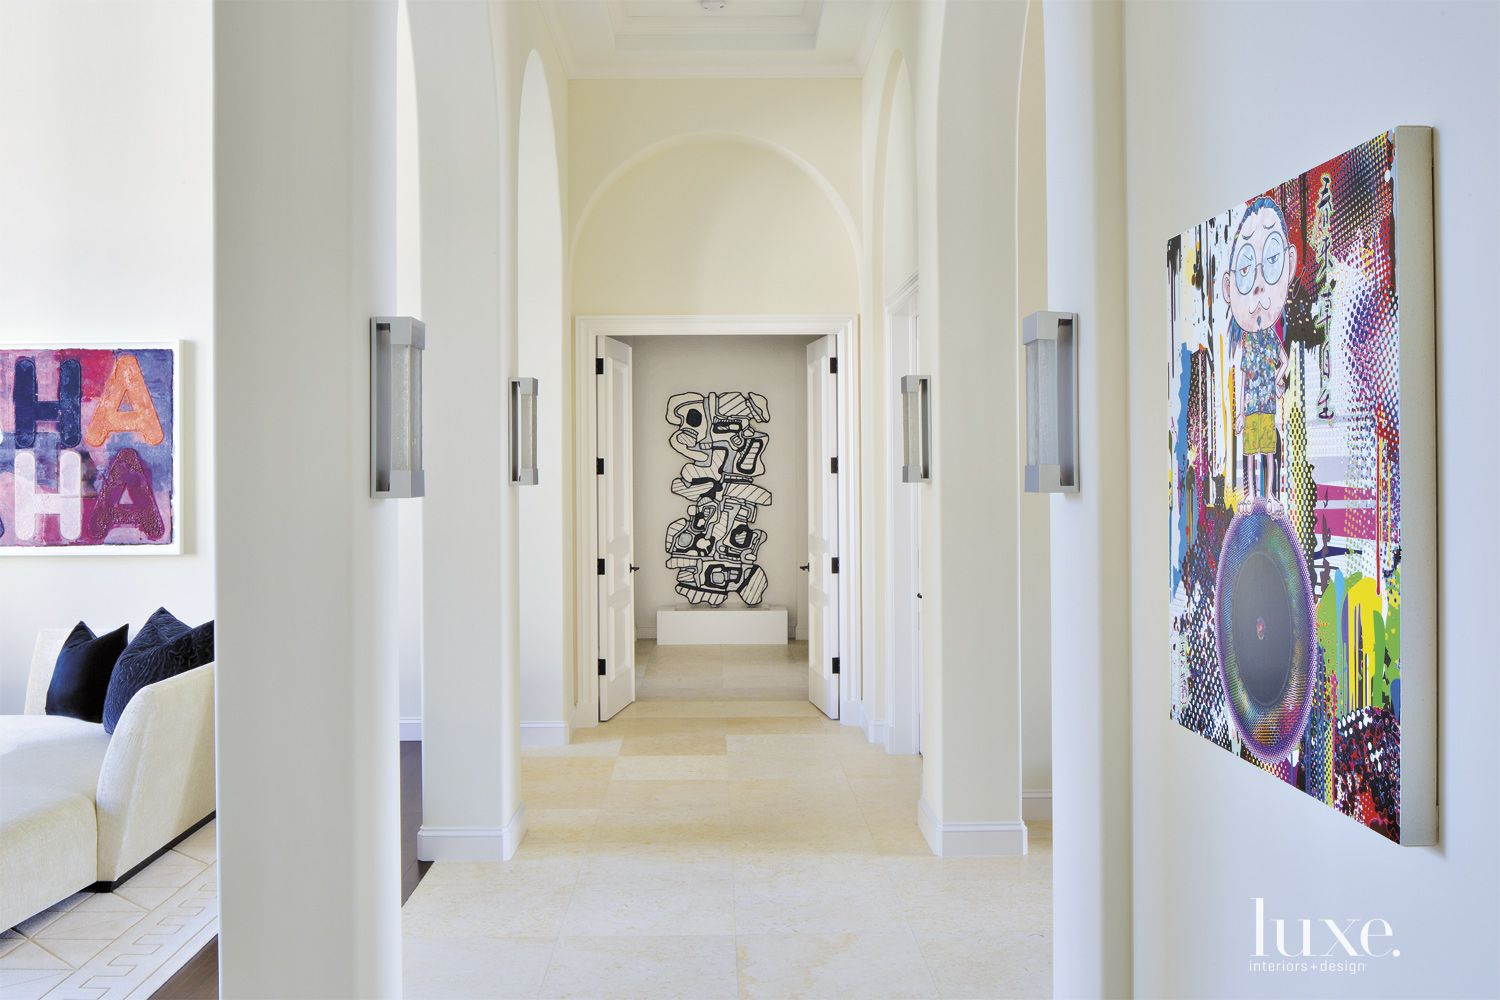 Contemporary White Main Gallery-Like Hallway